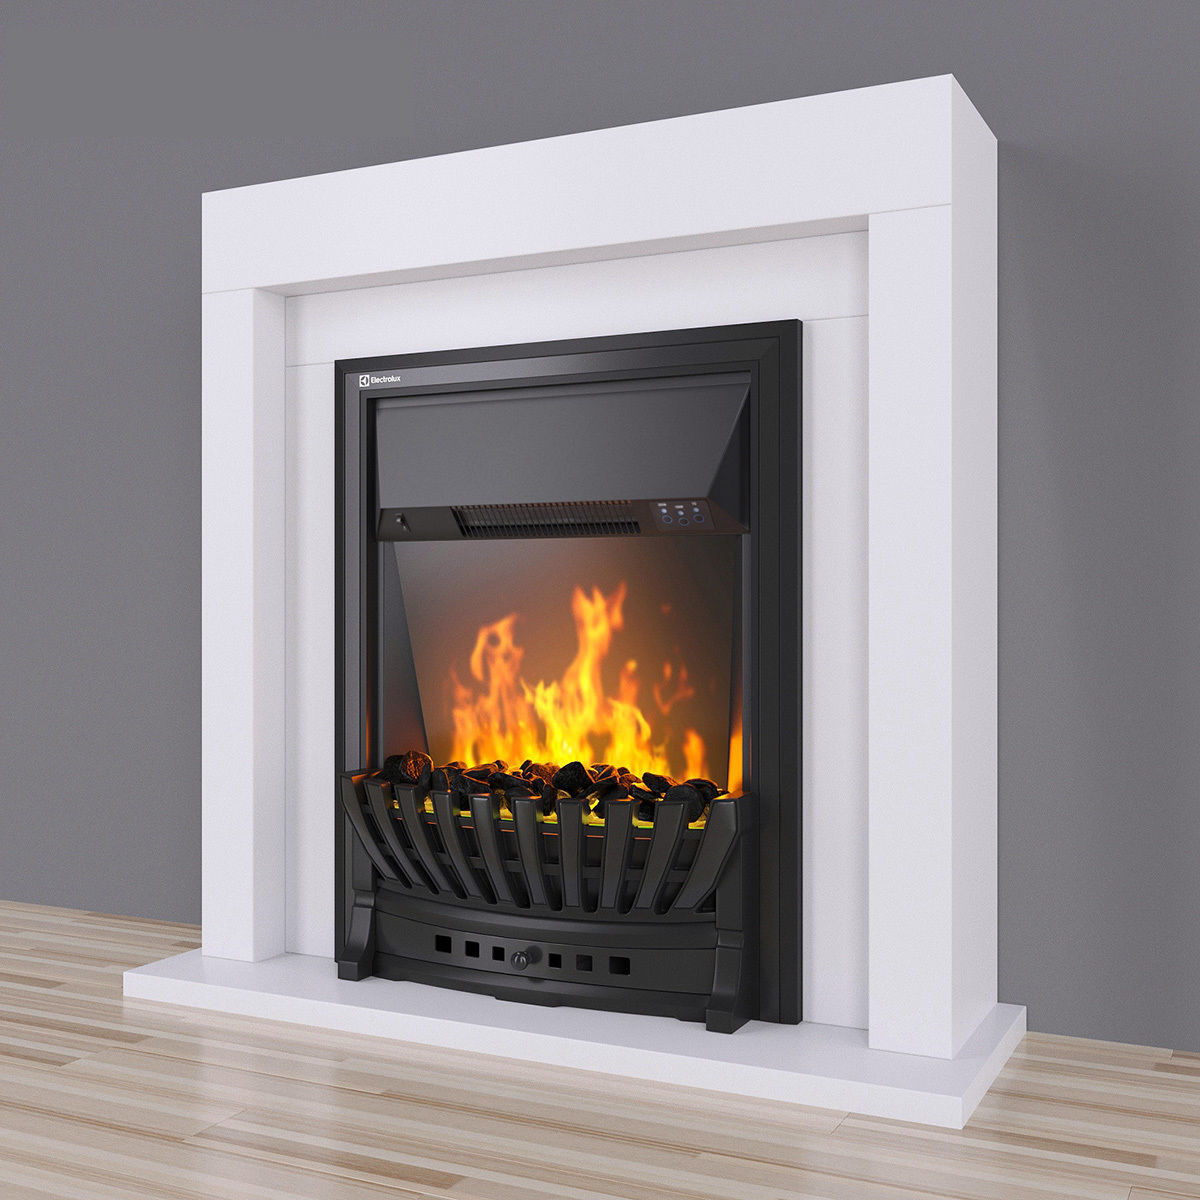 Electric fireplace EFP-S 4020WS white